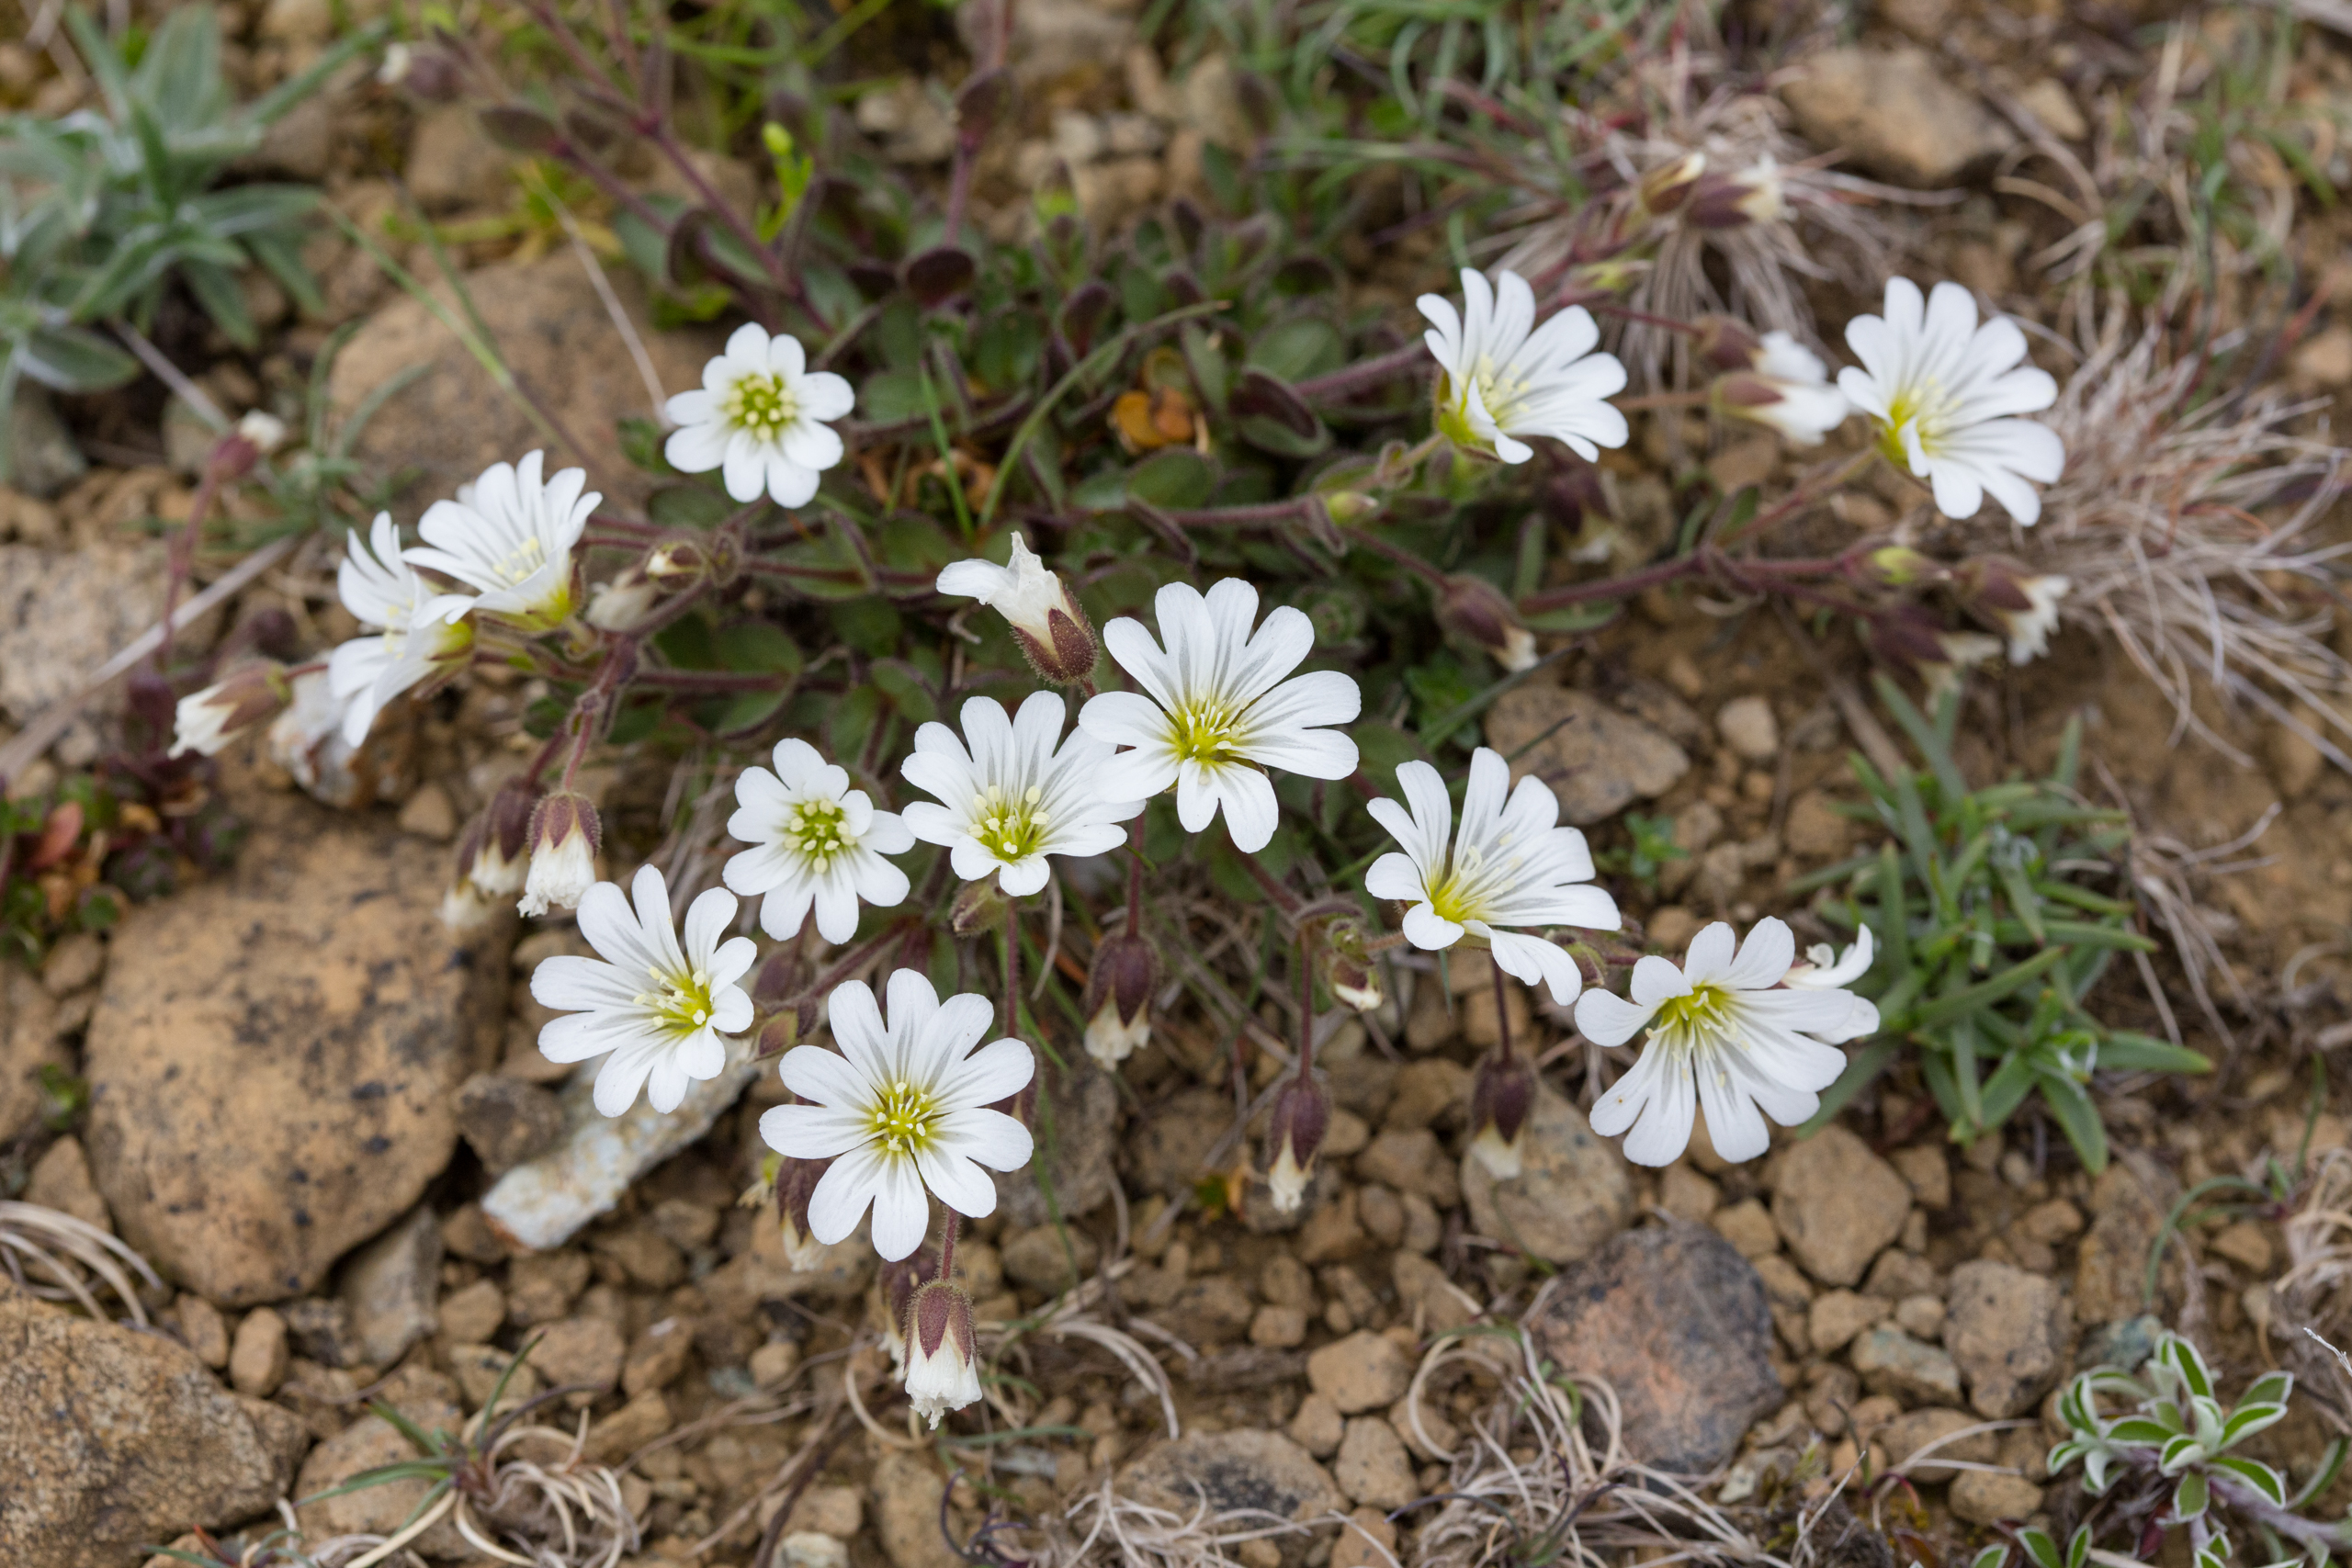 Edmonston's Chickweed is a flower that only grows in Unst